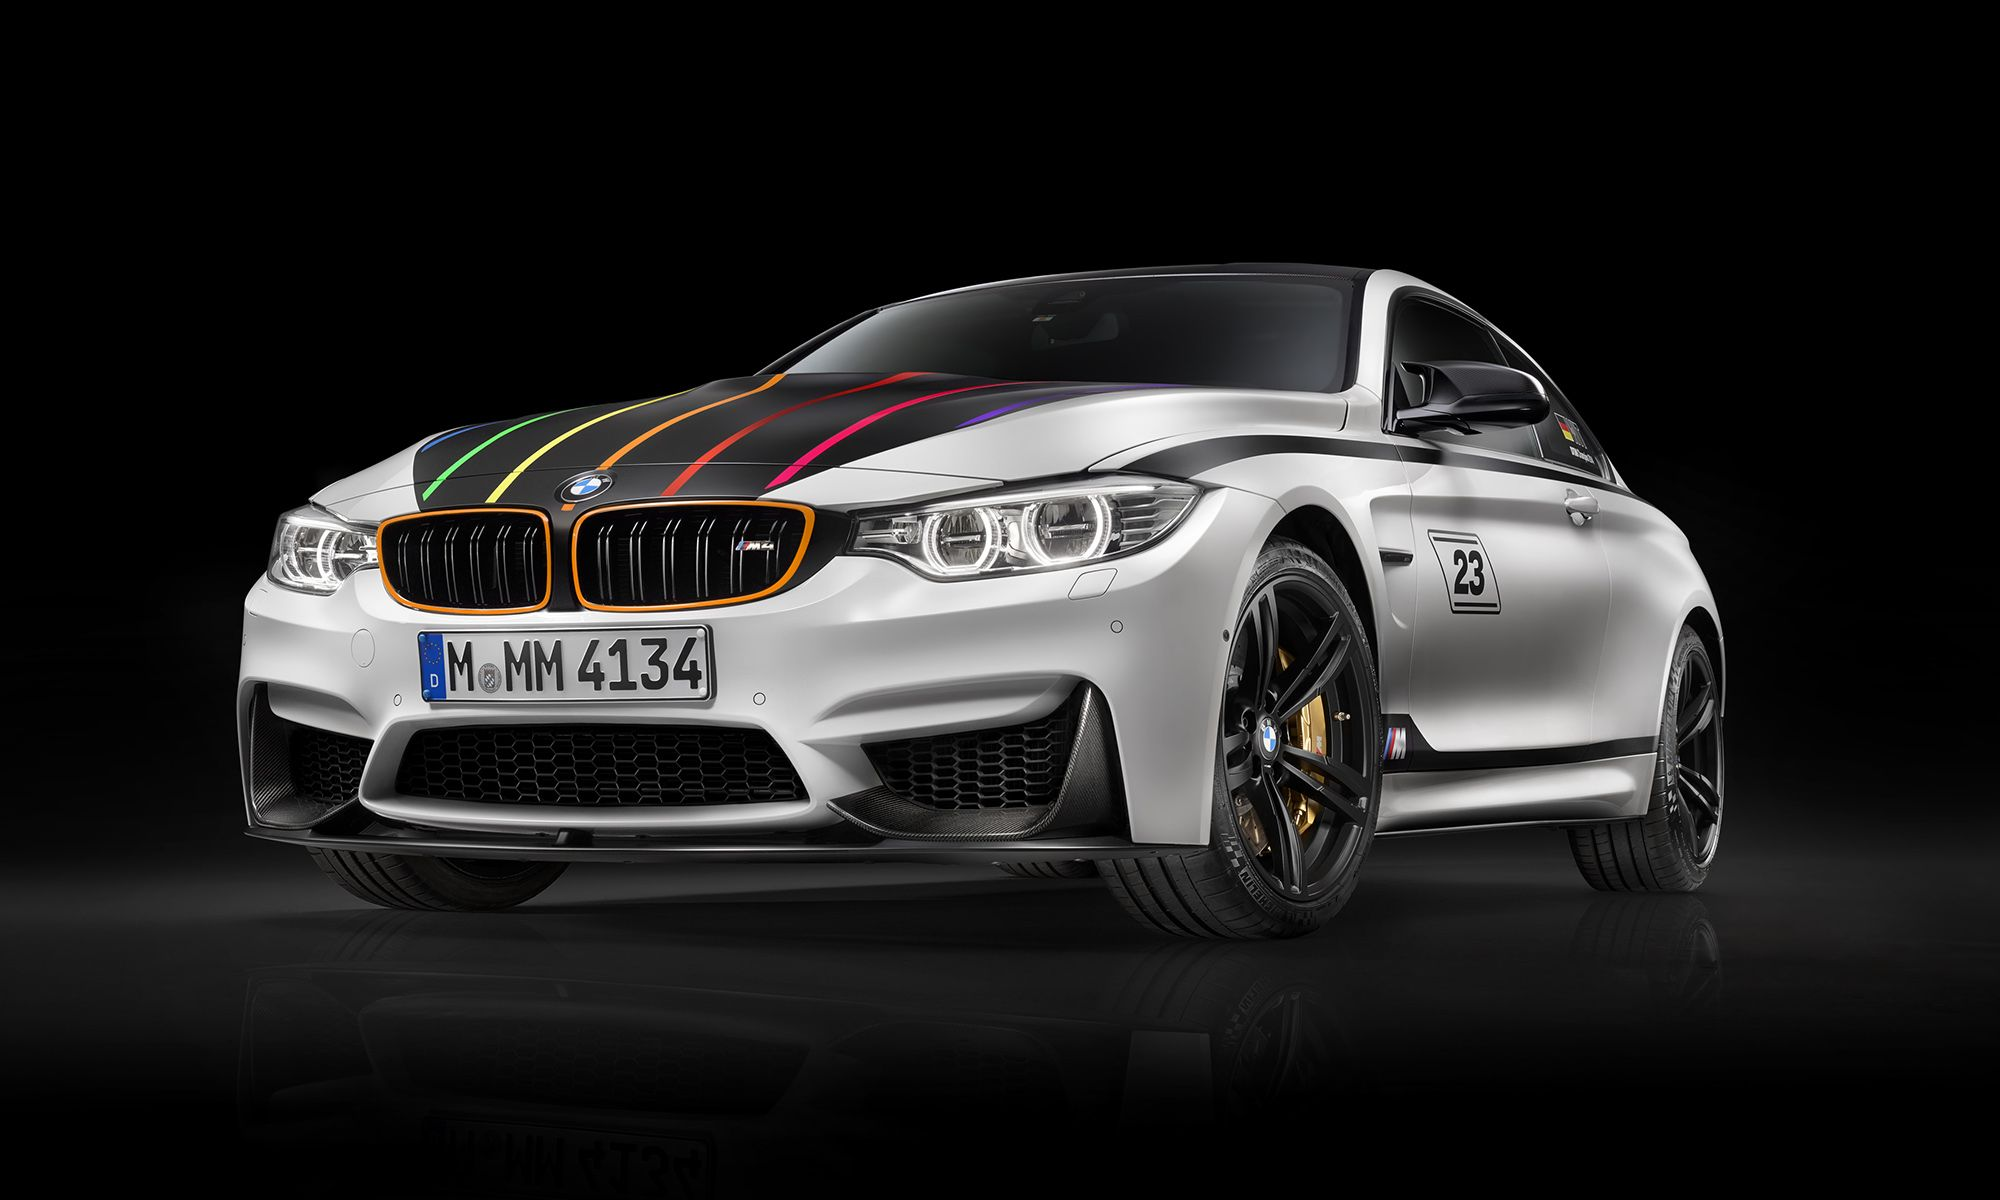 Bmw m4 dtm champion edition sports eye catching highlights http www